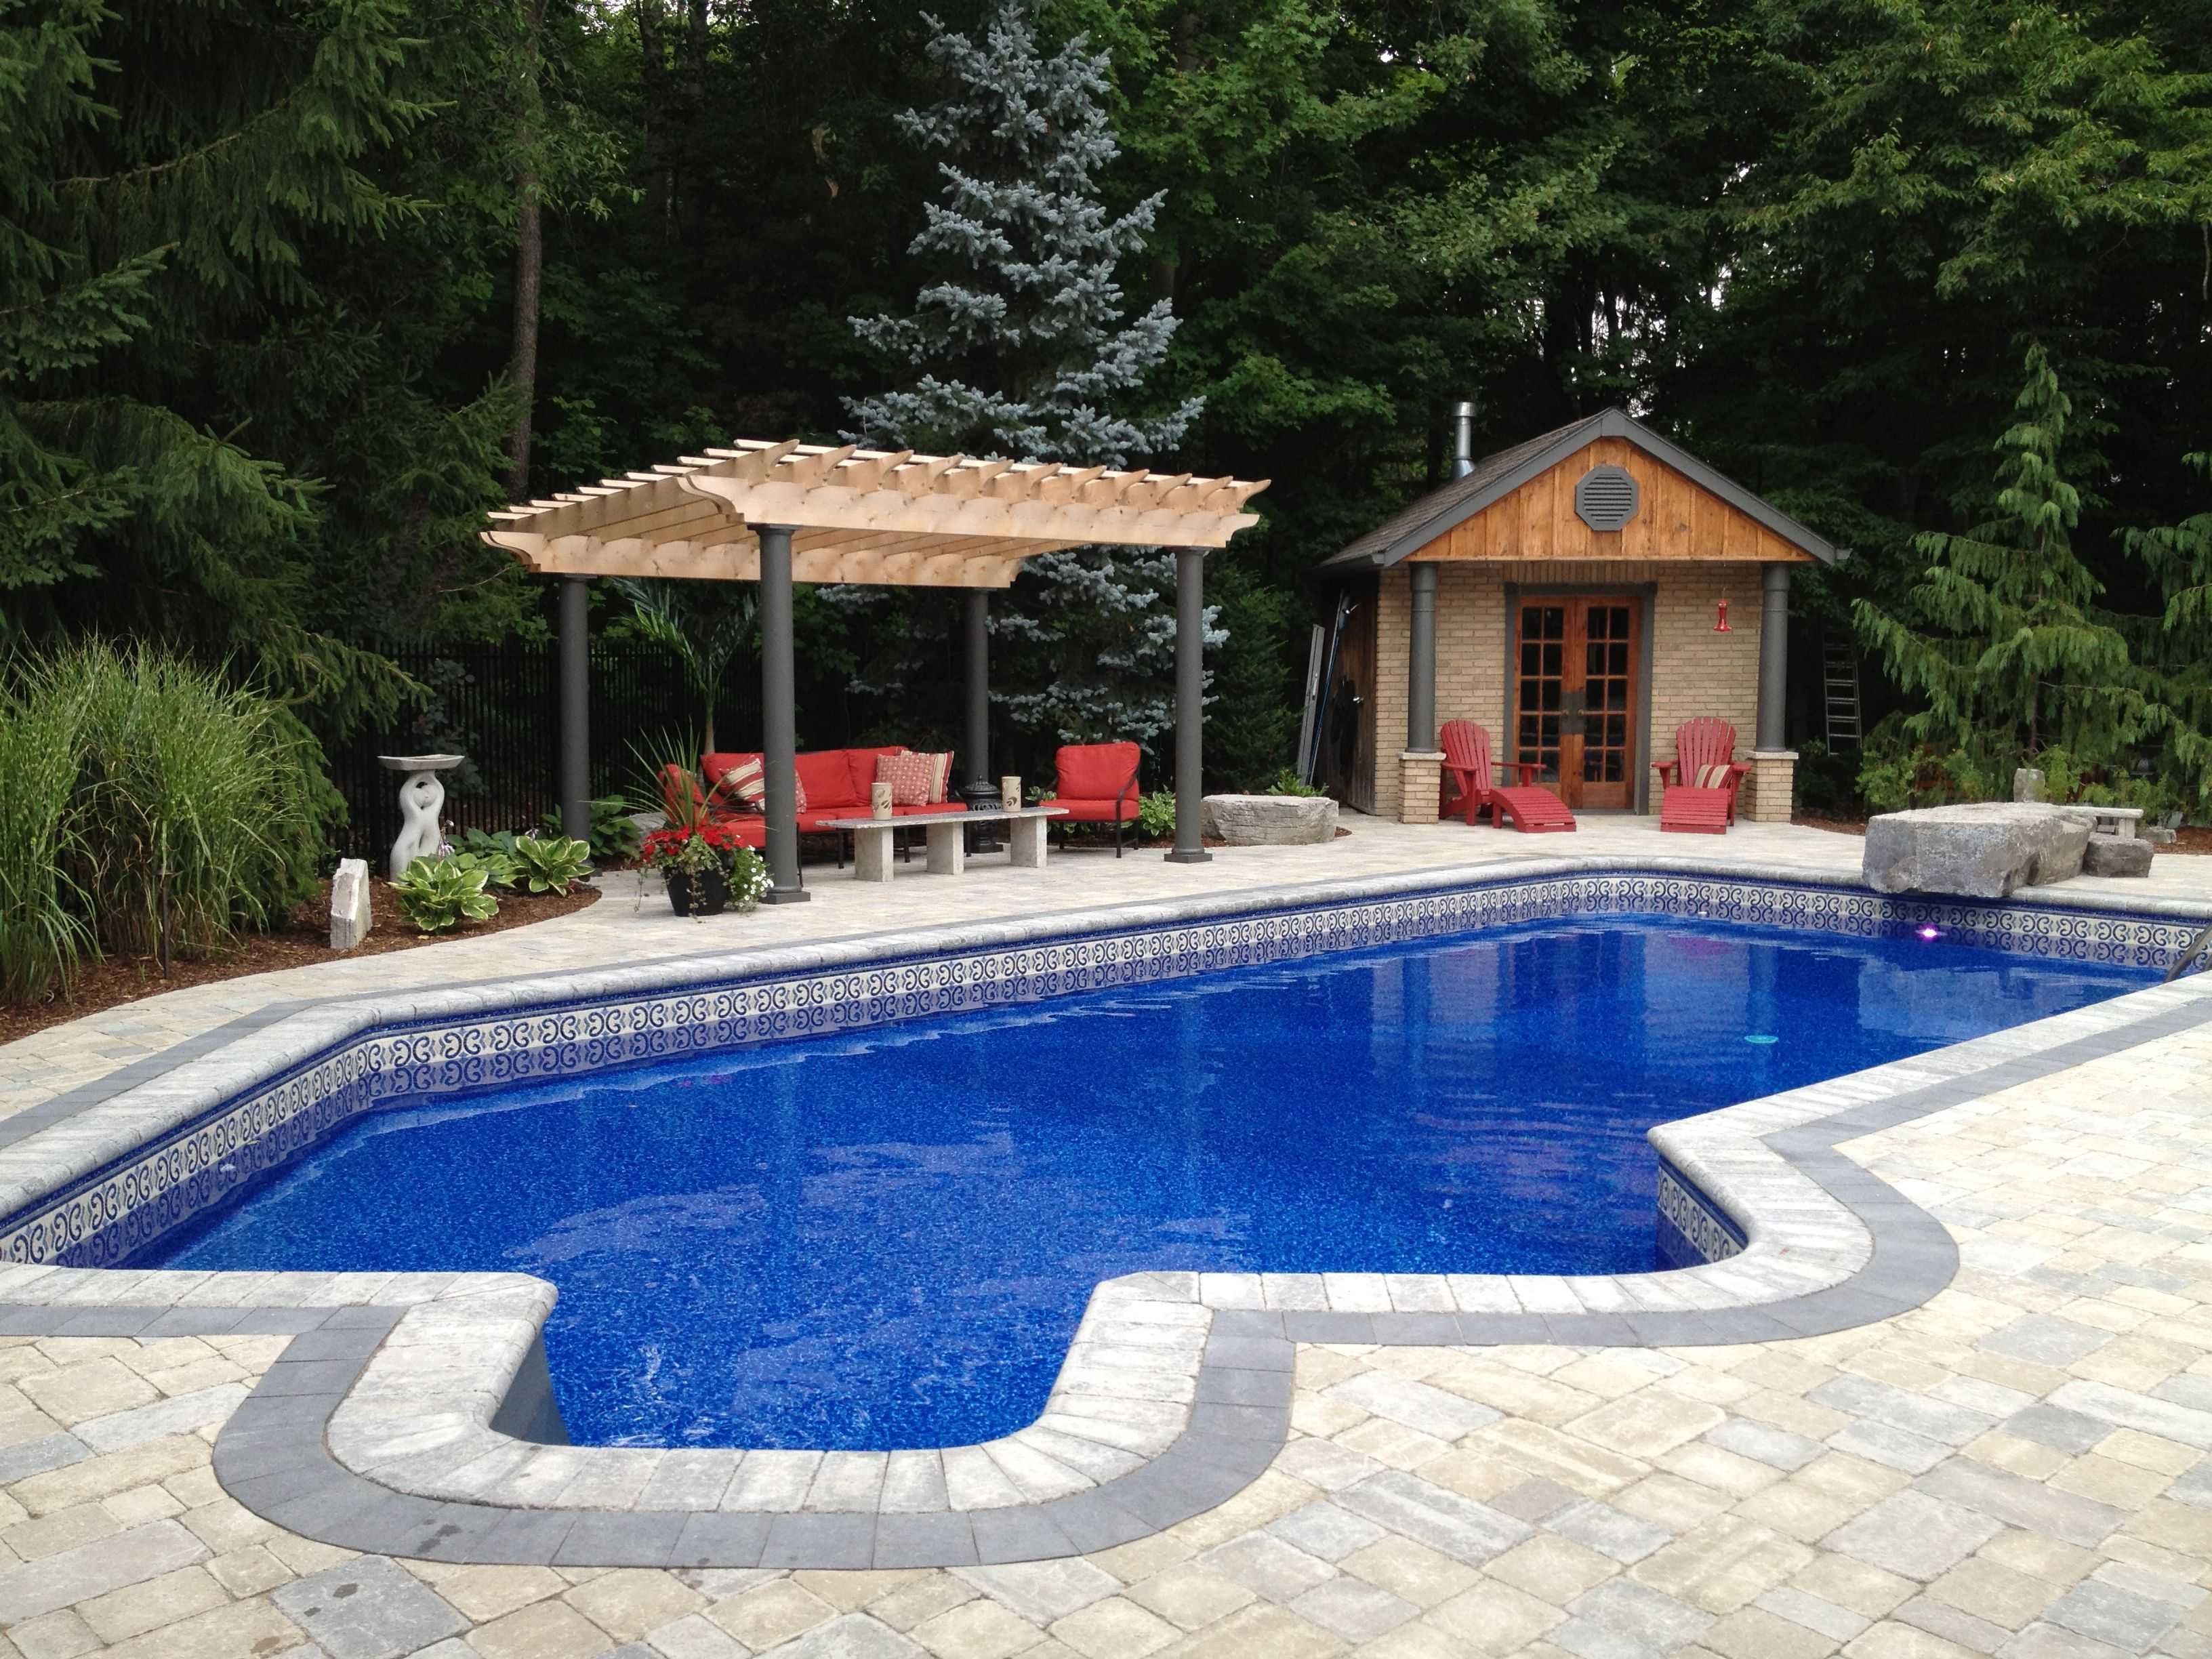 a stunning view across the pool to the custom cedar pergola and